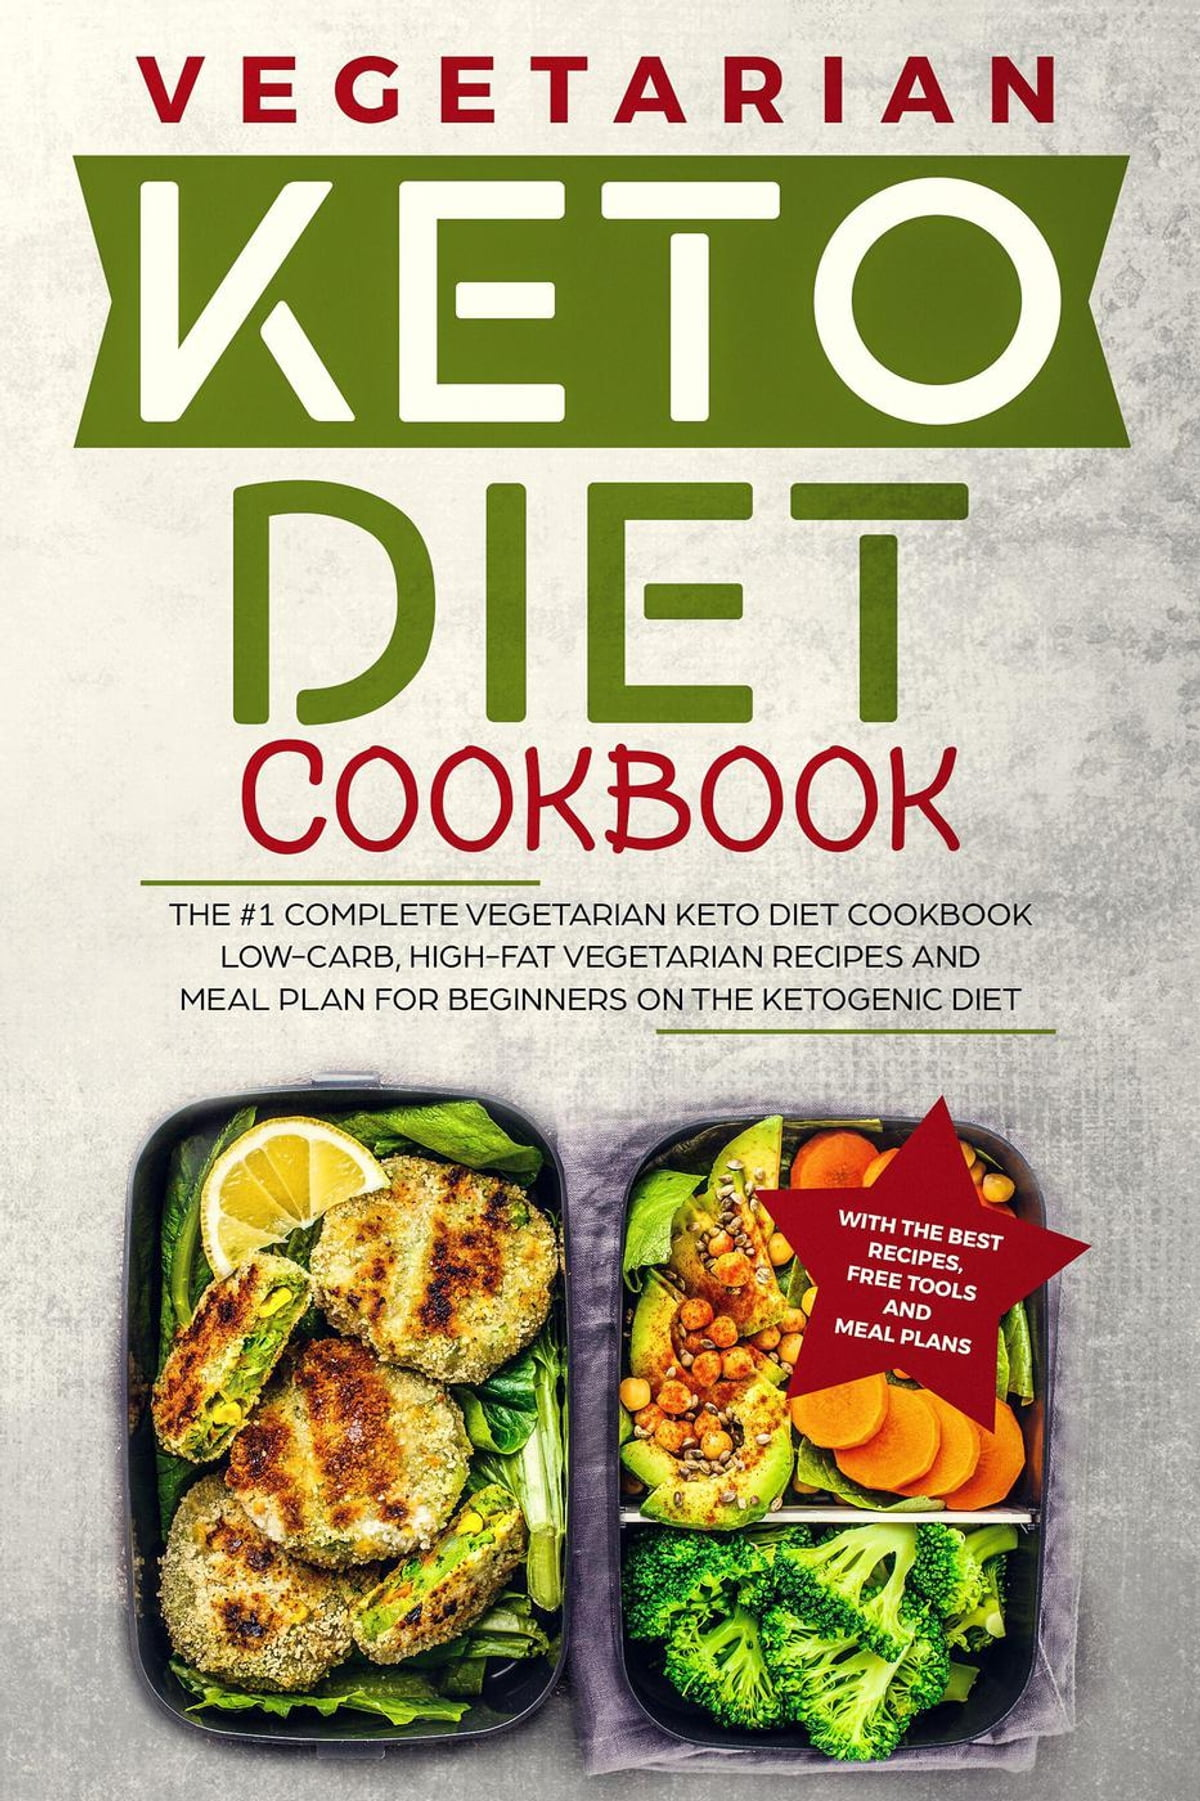 Keto Diet Cookbook The 1 Complete Vegetarian Keto Diet Cookbook Low Carb High Fat Vegetarian Recipes And Meal Plans For Beginners On The Ketogenic Diet Ketosis Diet Vegetarian Cookbook Ebook By Robert Mcgowan